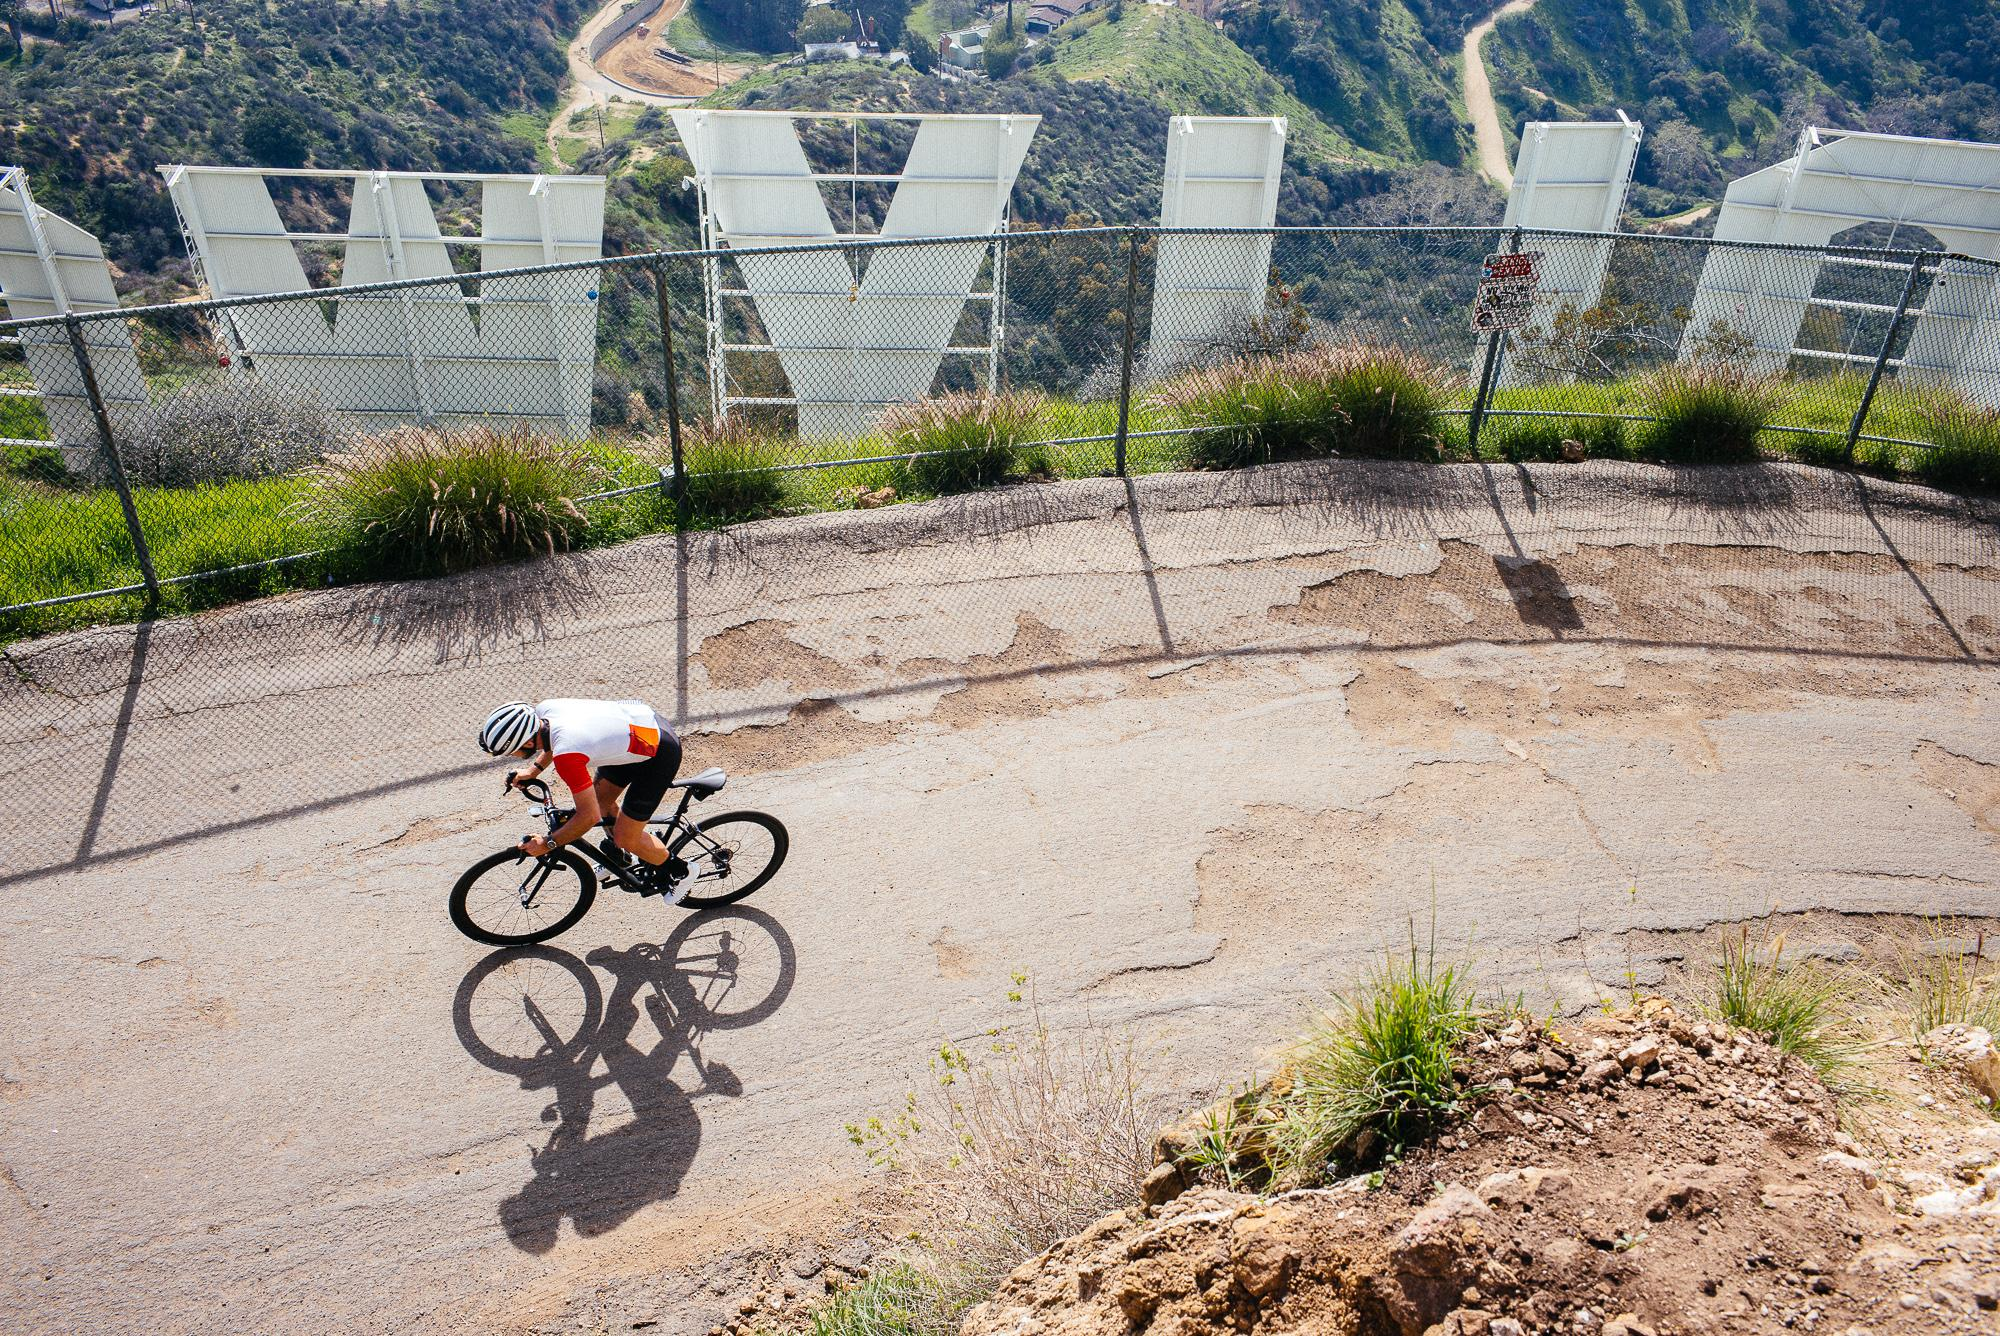 The Ultimate Tourist Bike Ride in Los Angeles: Up to the Hollywood Sign